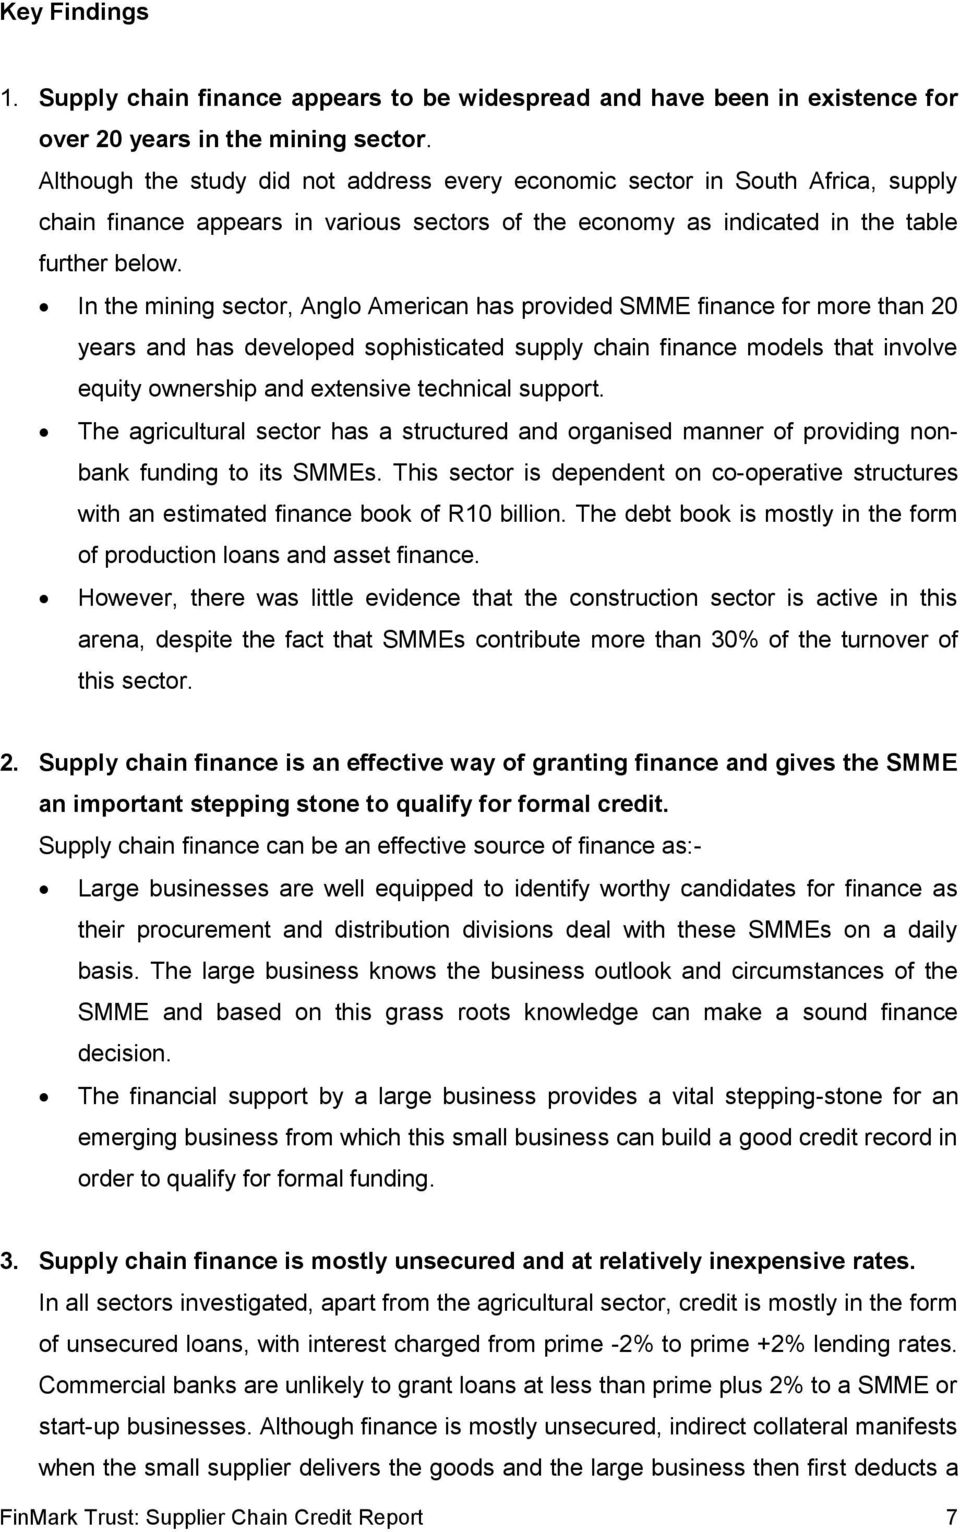 In the mining sector, Anglo American has provided SMME finance for more than 20 years and has developed sophisticated supply chain finance models that involve equity ownership and extensive technical